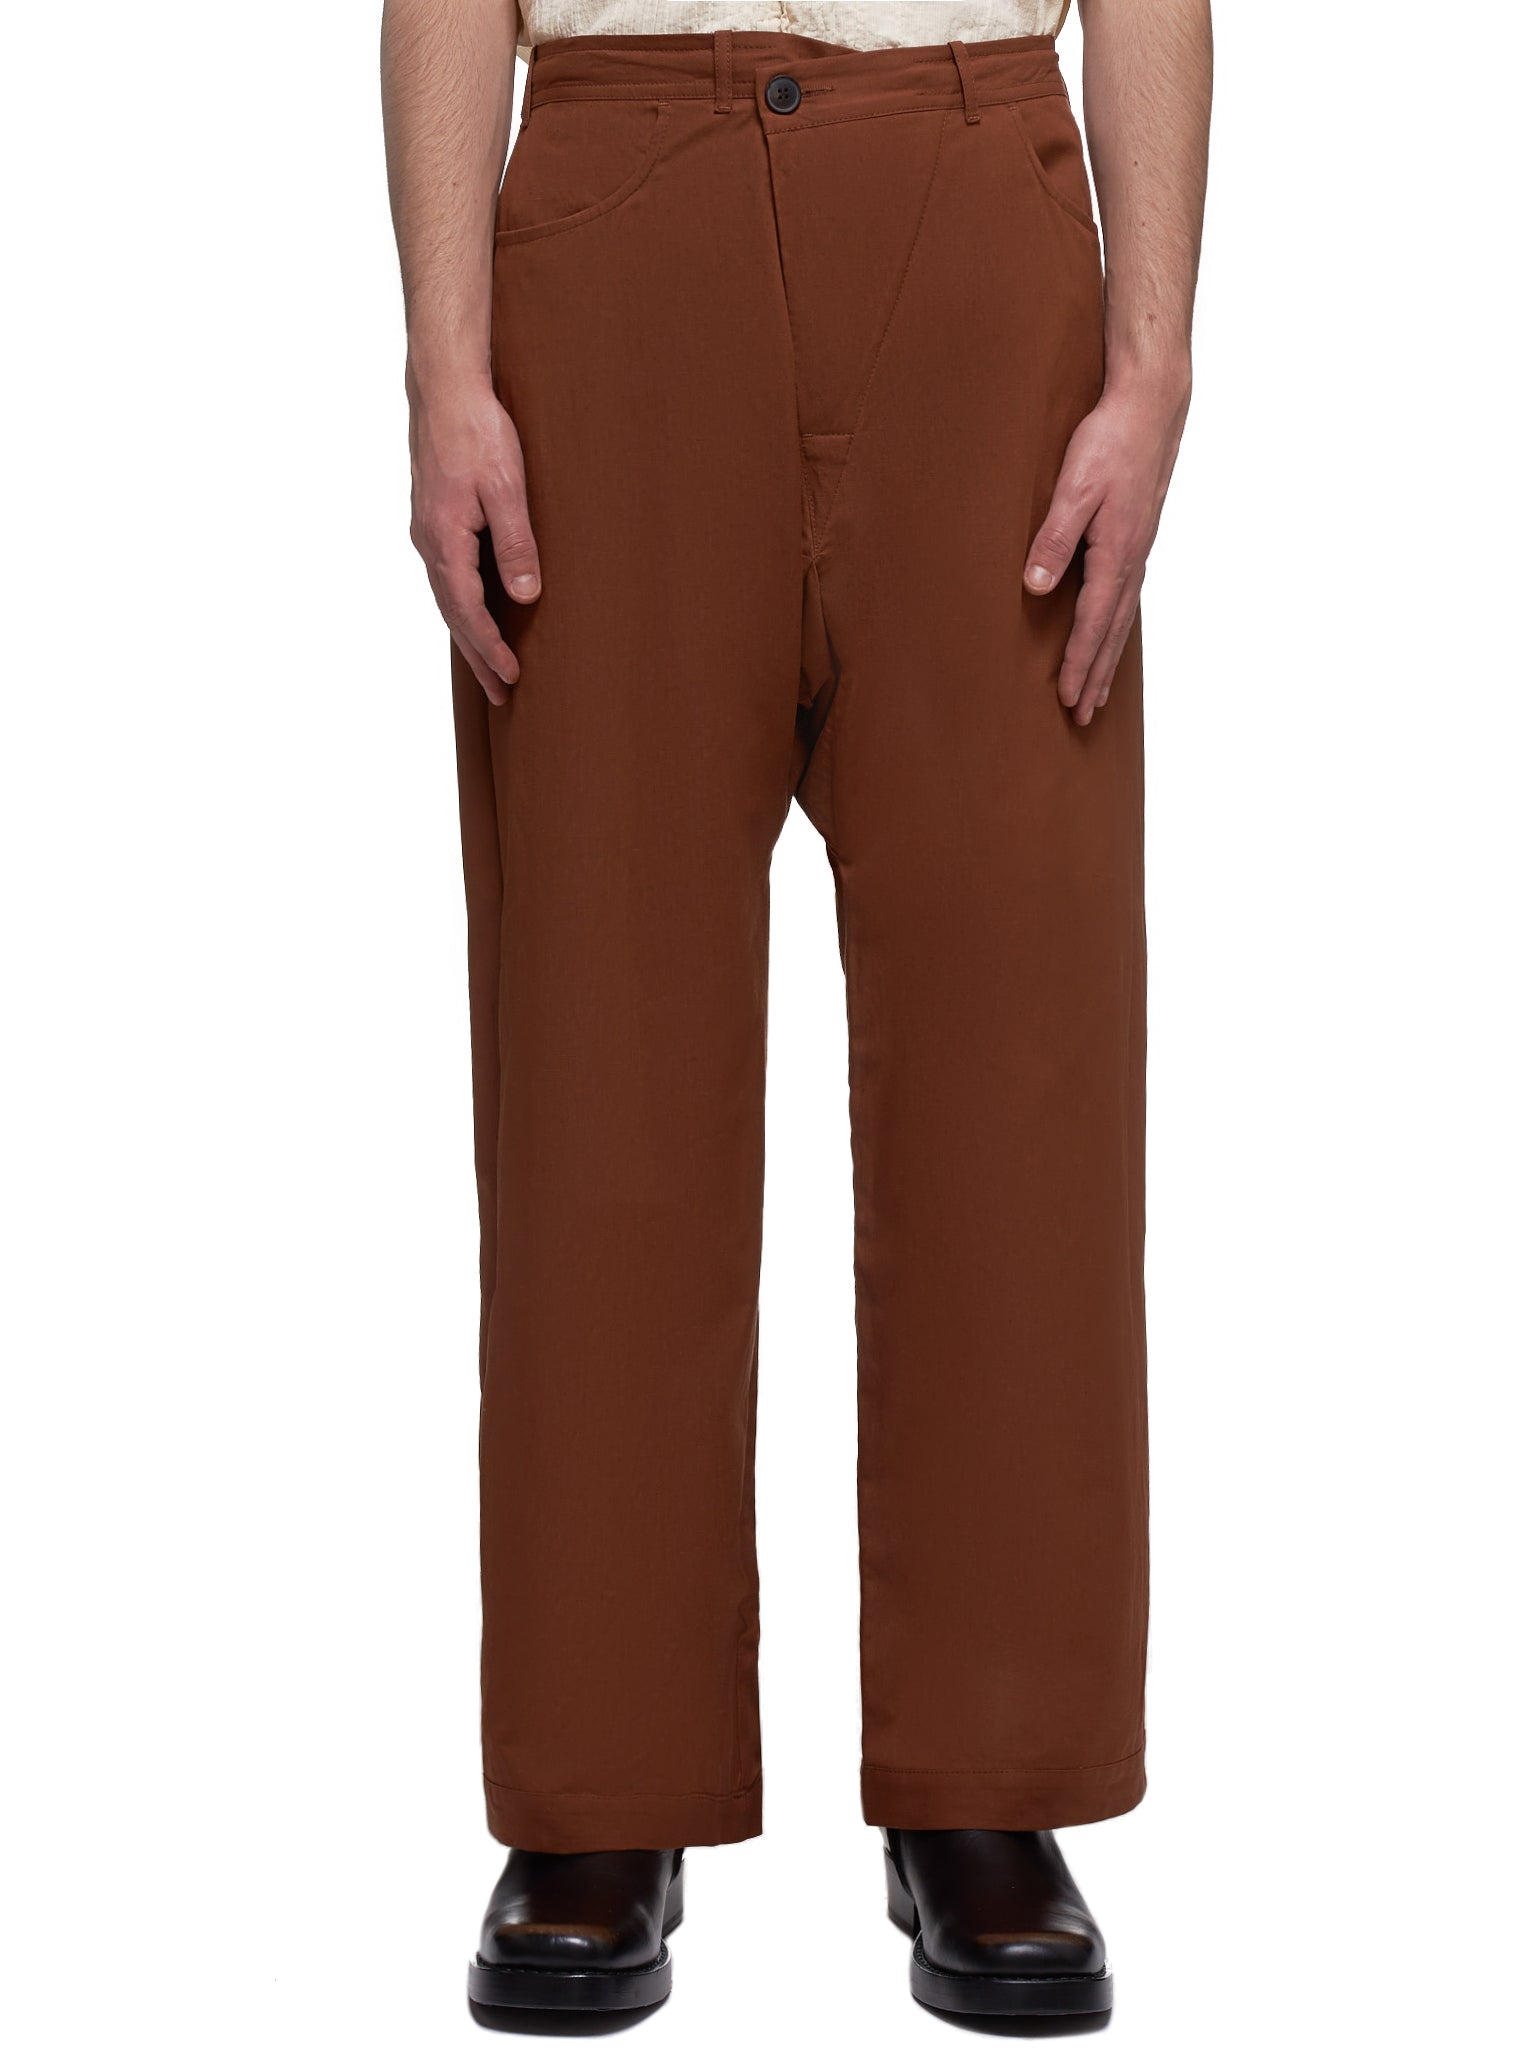 Rust Trousers (TROUSERS-53-TWILL-RUST)